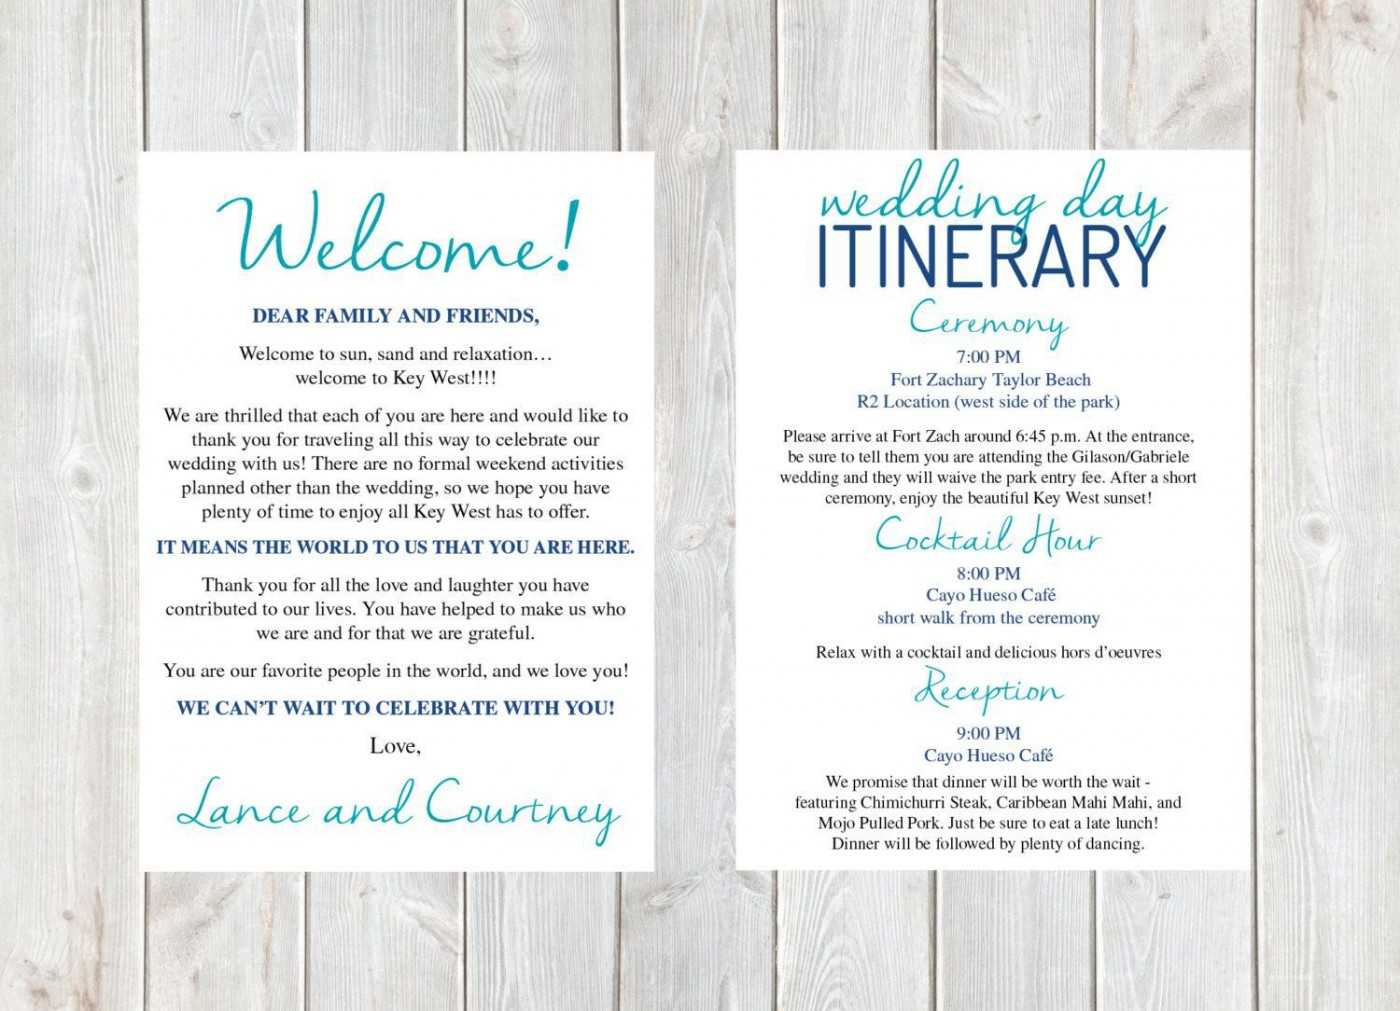 001 Rare Wedding Hotel Welcome Letter Template Highest Clarity 1400